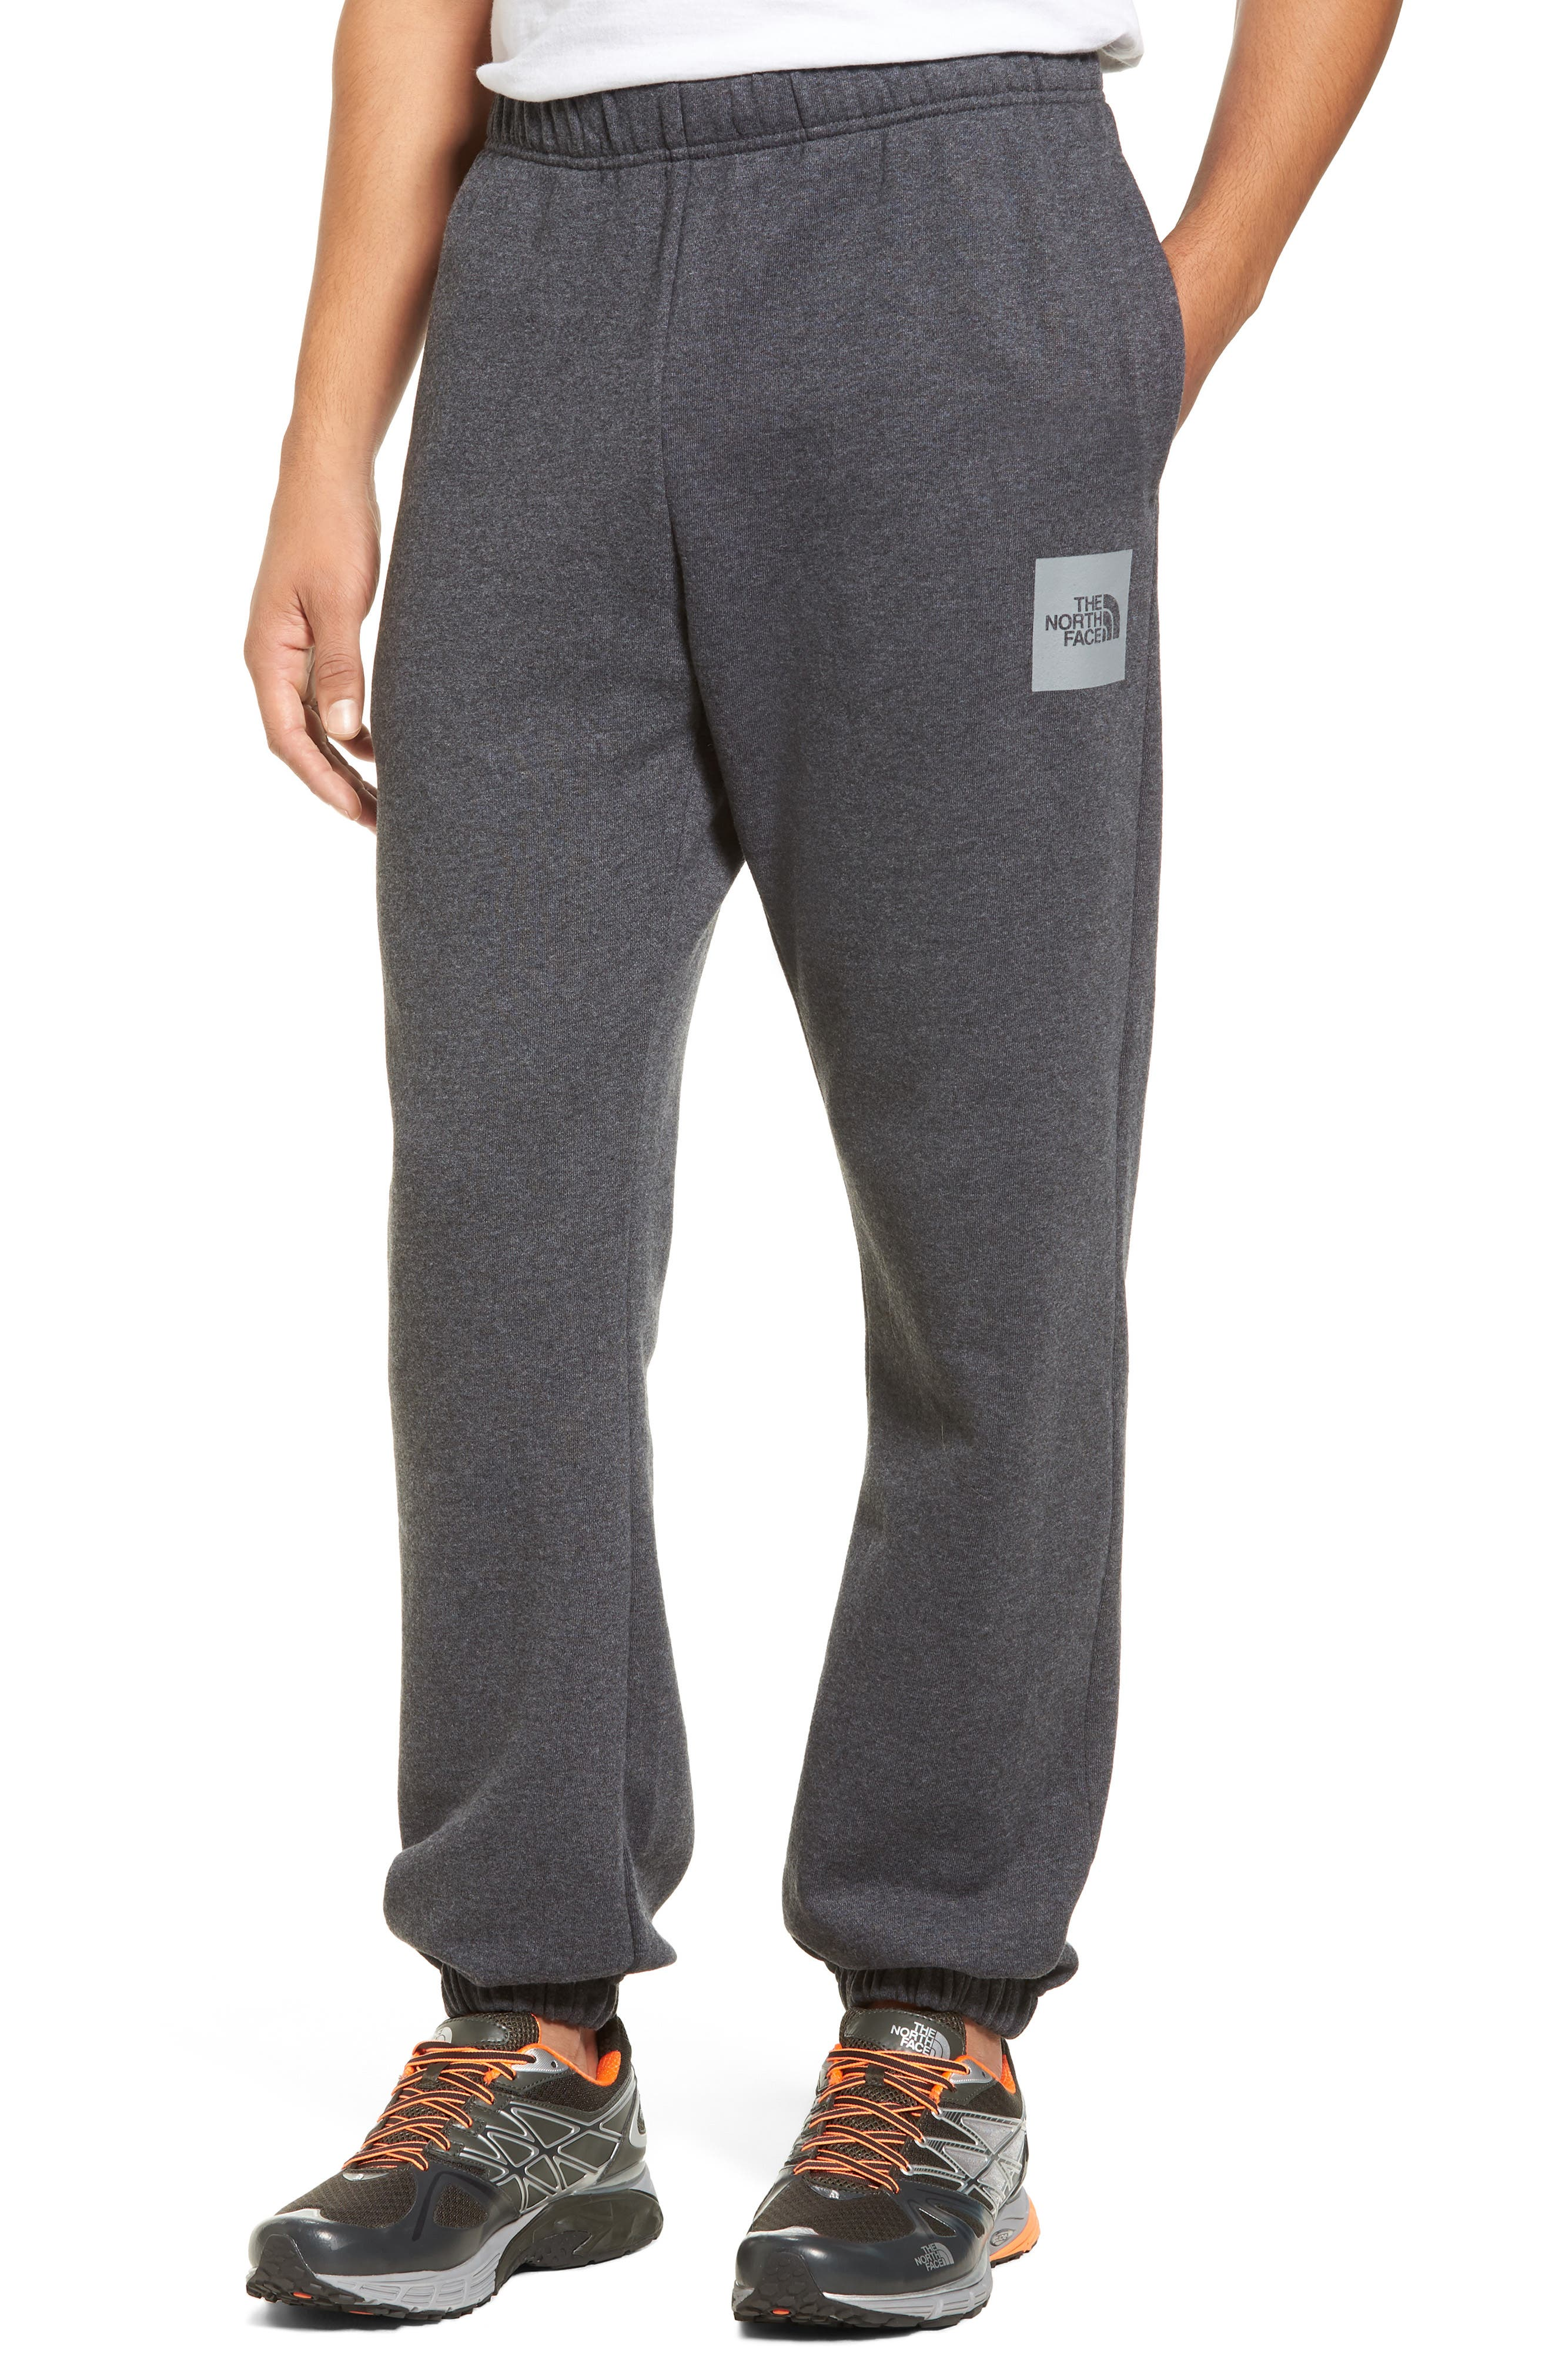 Alternate Image 1 Selected - The North Face Reflective Never Stop Pants